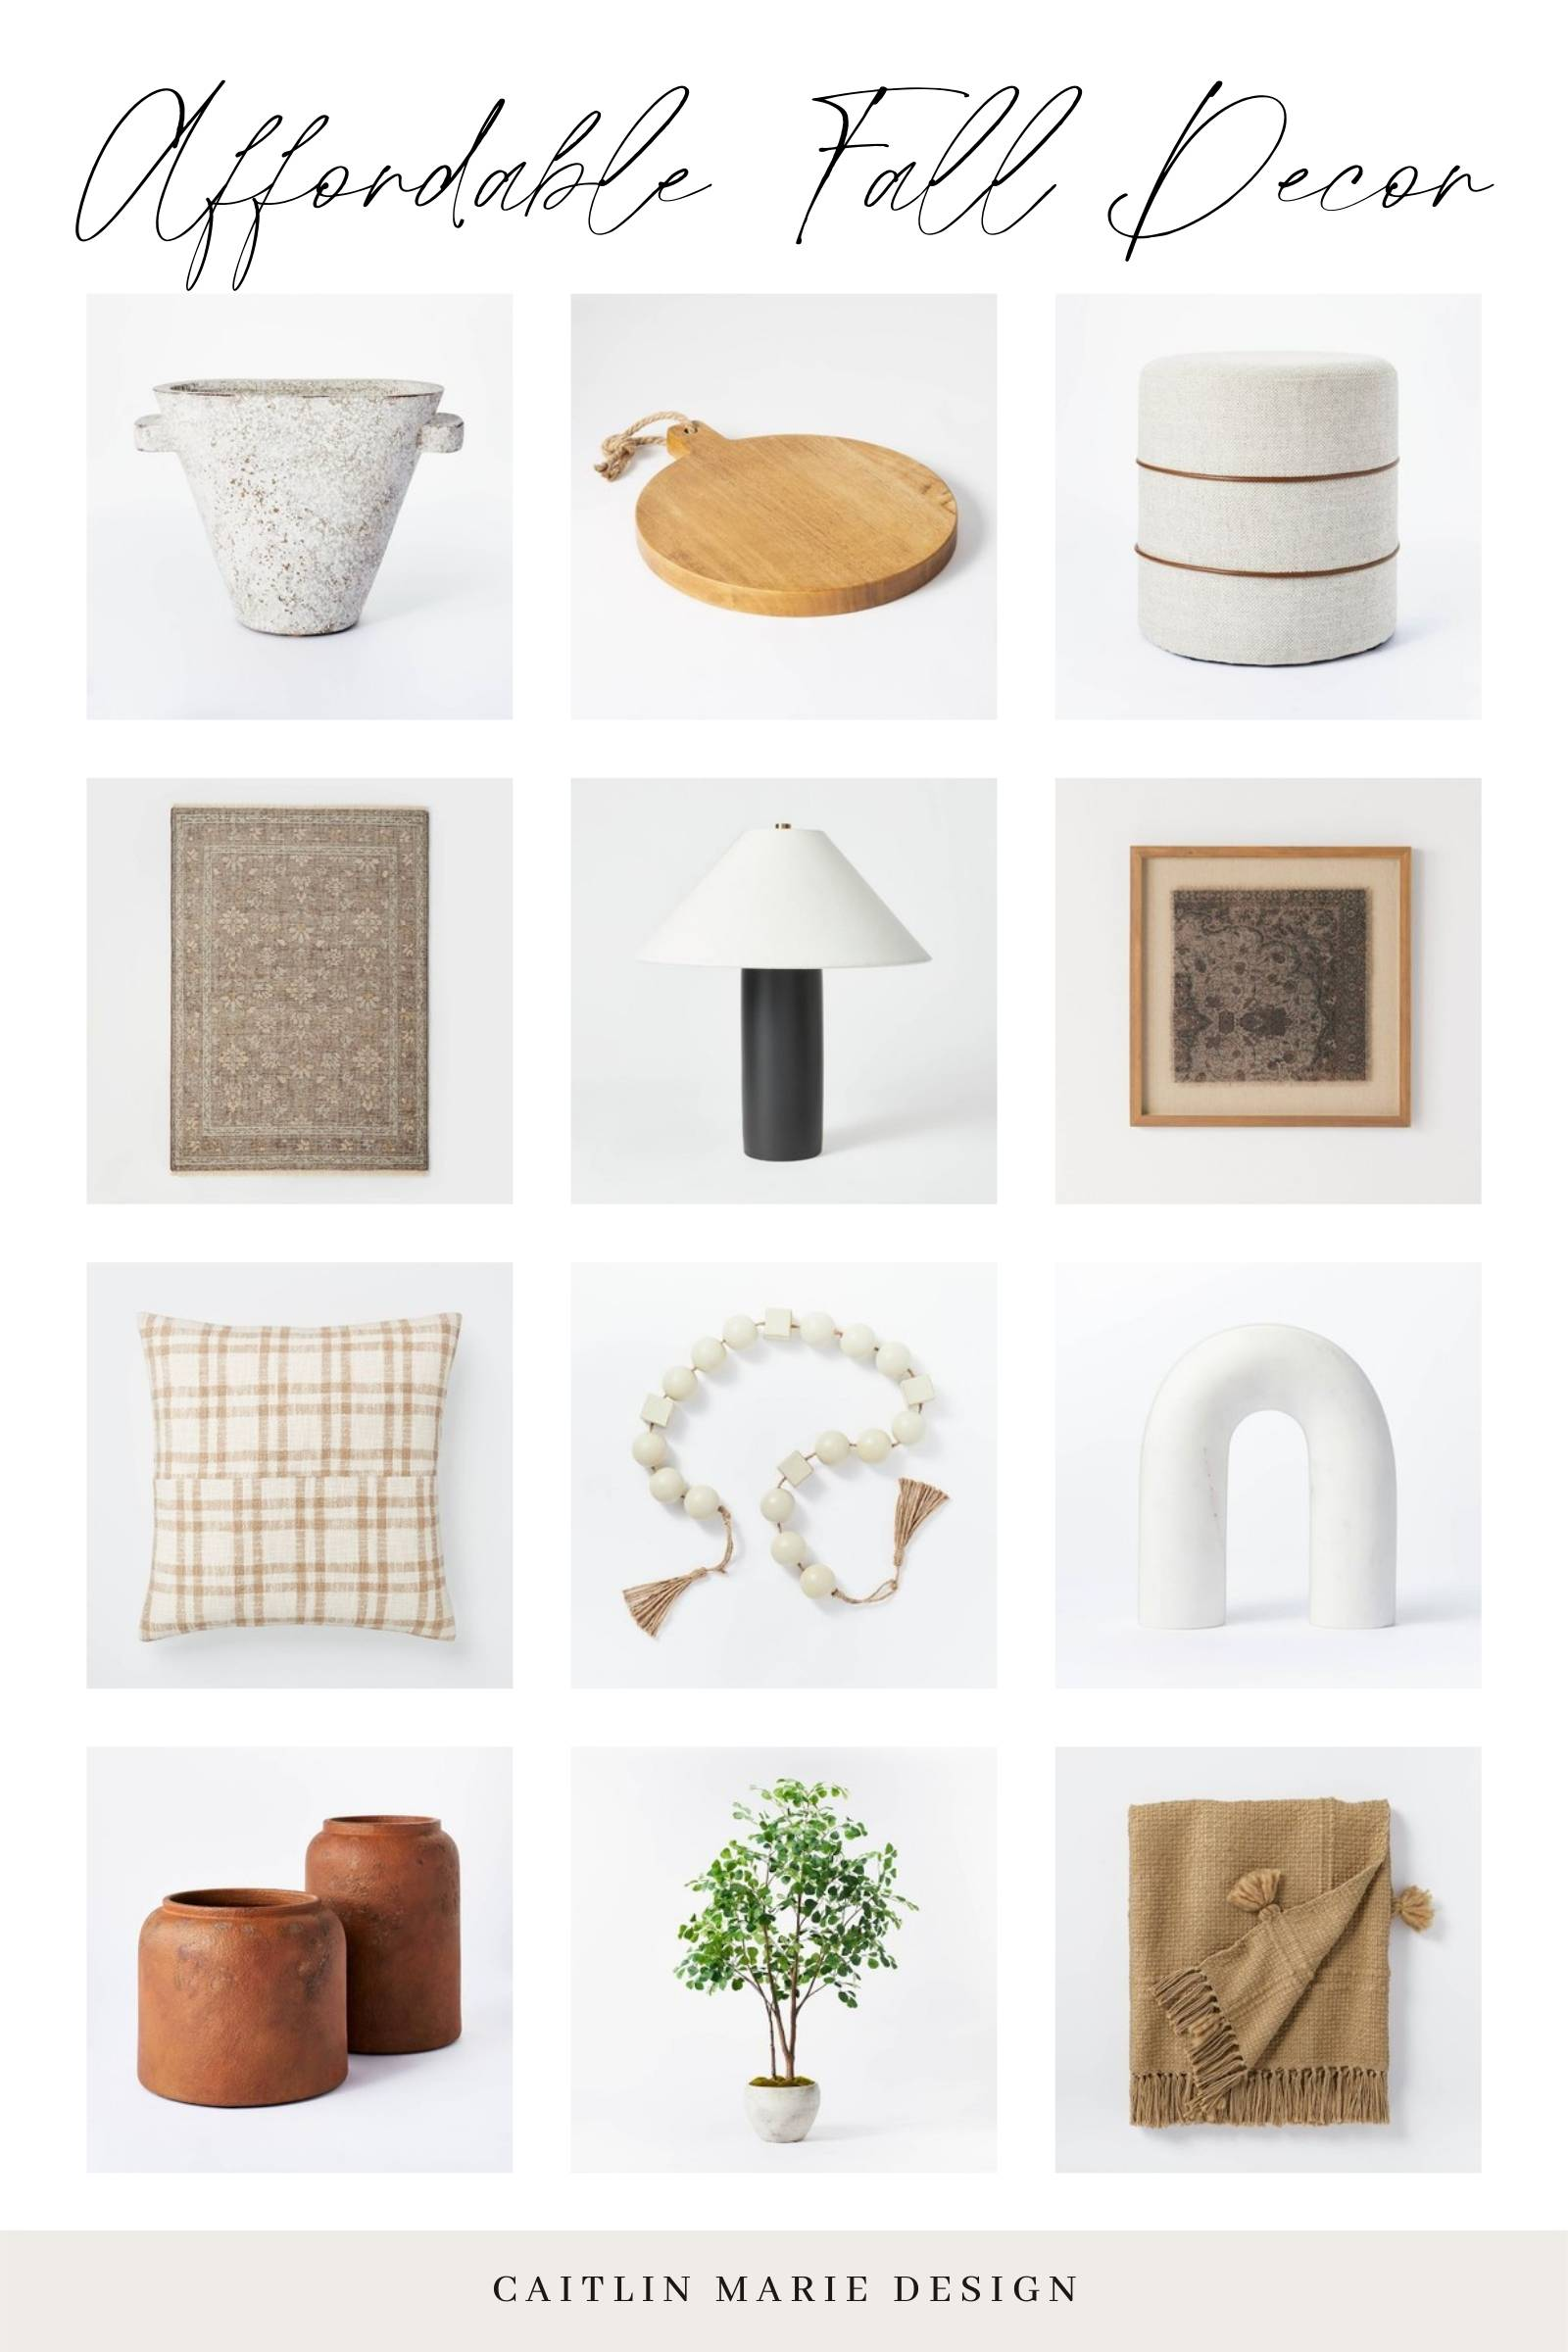 Studio McGee Fall Decor Finds 2021 - Target affordable fall decor round up with sculptural vase, round bread board, bead garland, etc